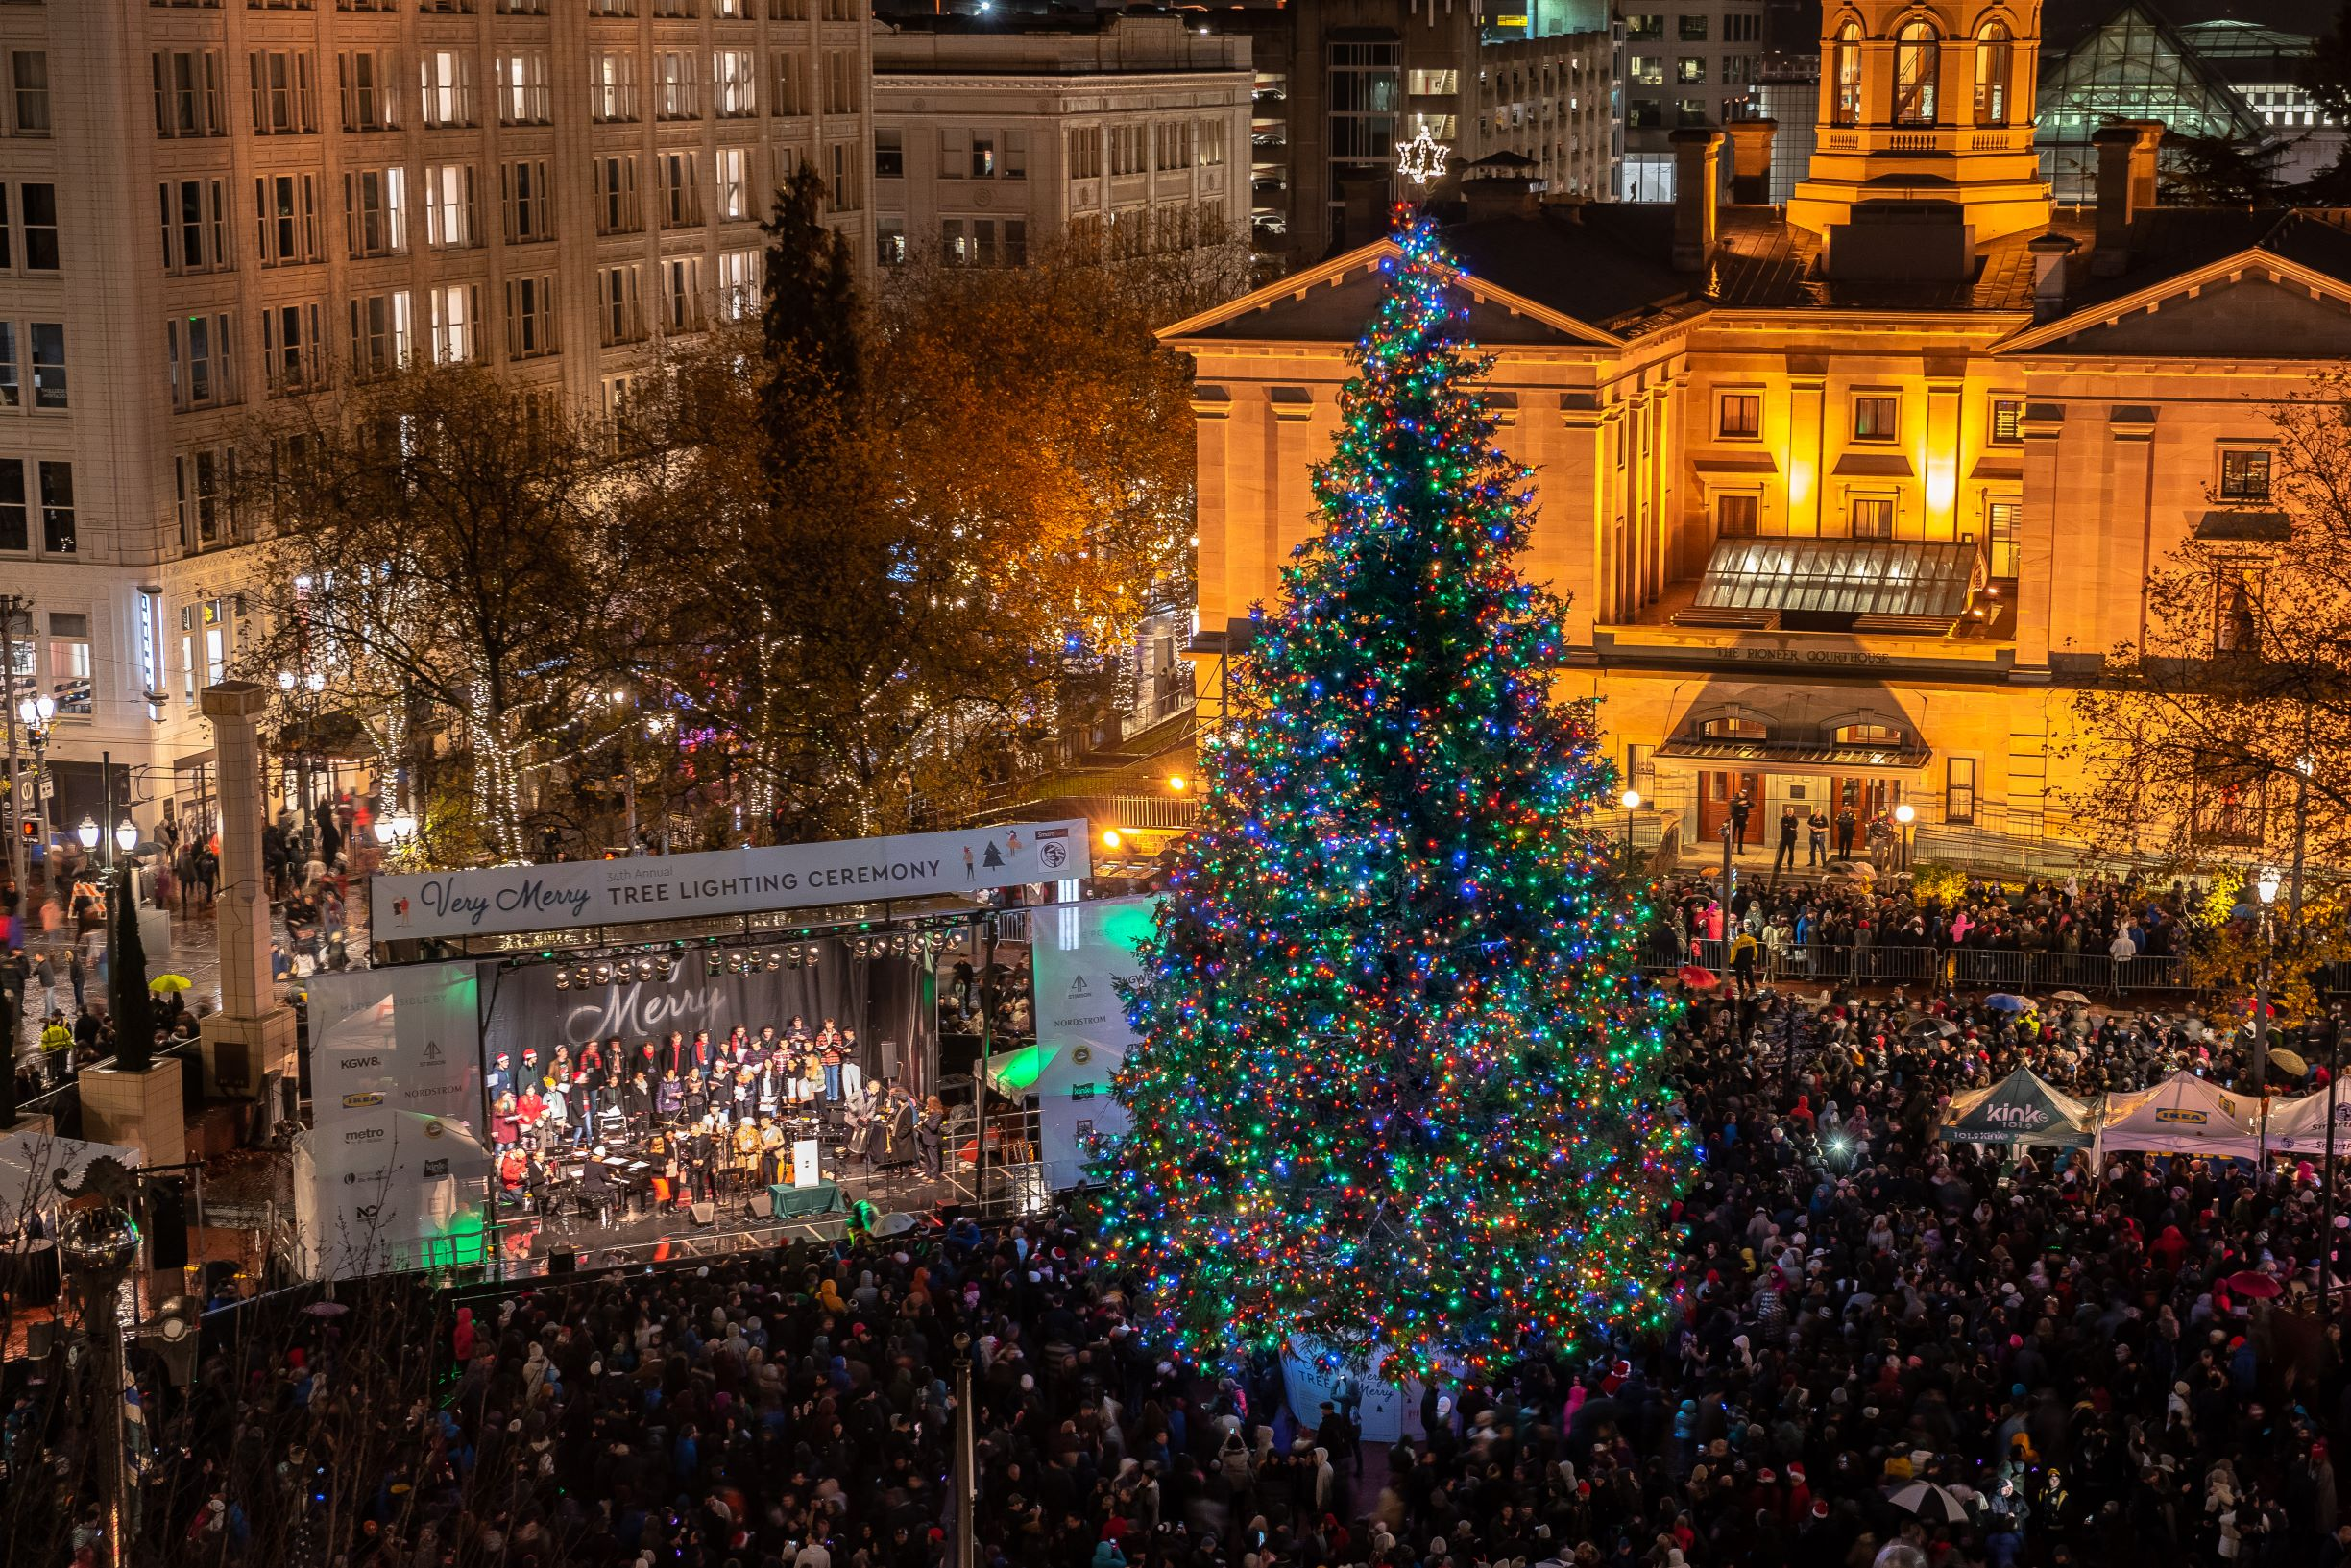 Pioneer Square Christmas Tree Lighting 2020 Holiday Events at Pioneer Courthouse Square | The Official Guide